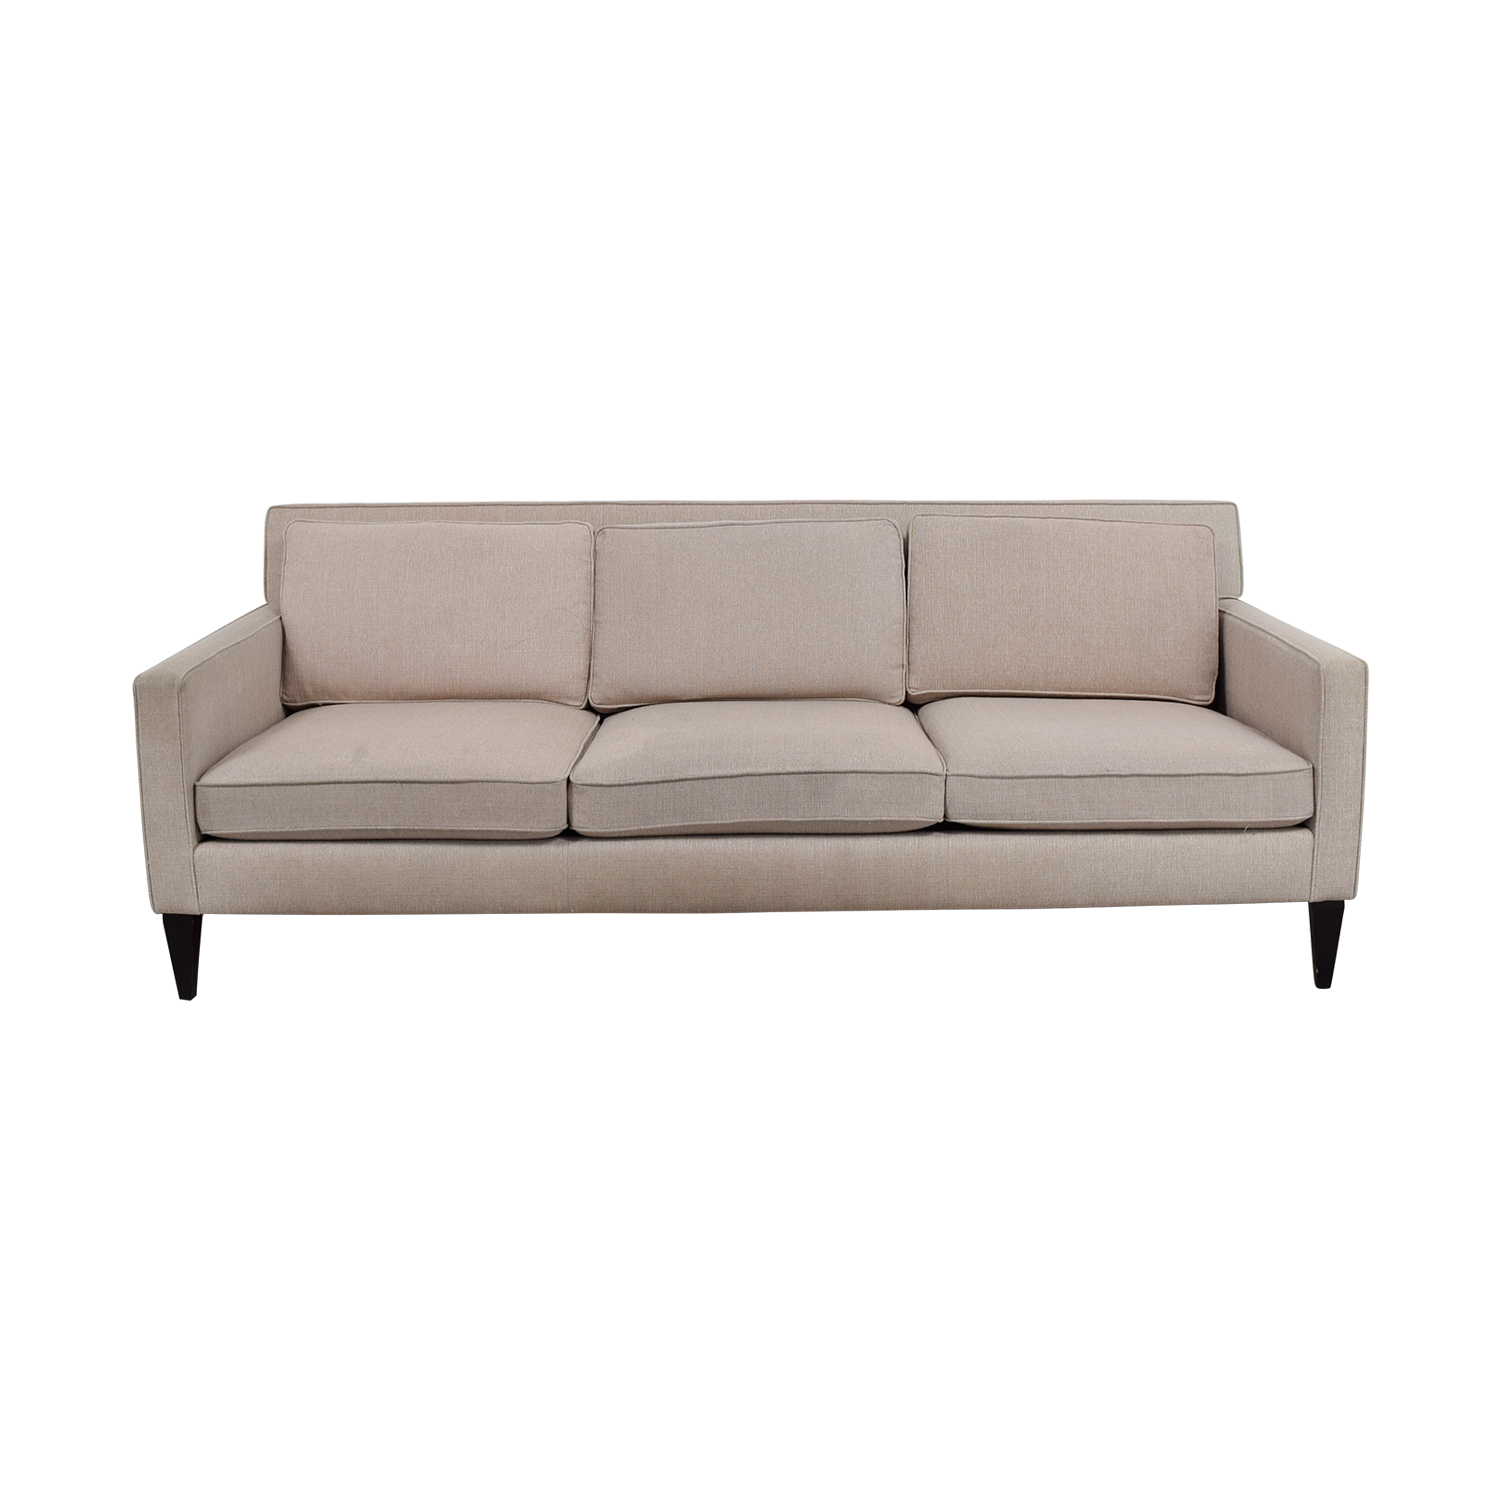 three cushion sofa wood frame with removable cushions sofas slipcovers home and